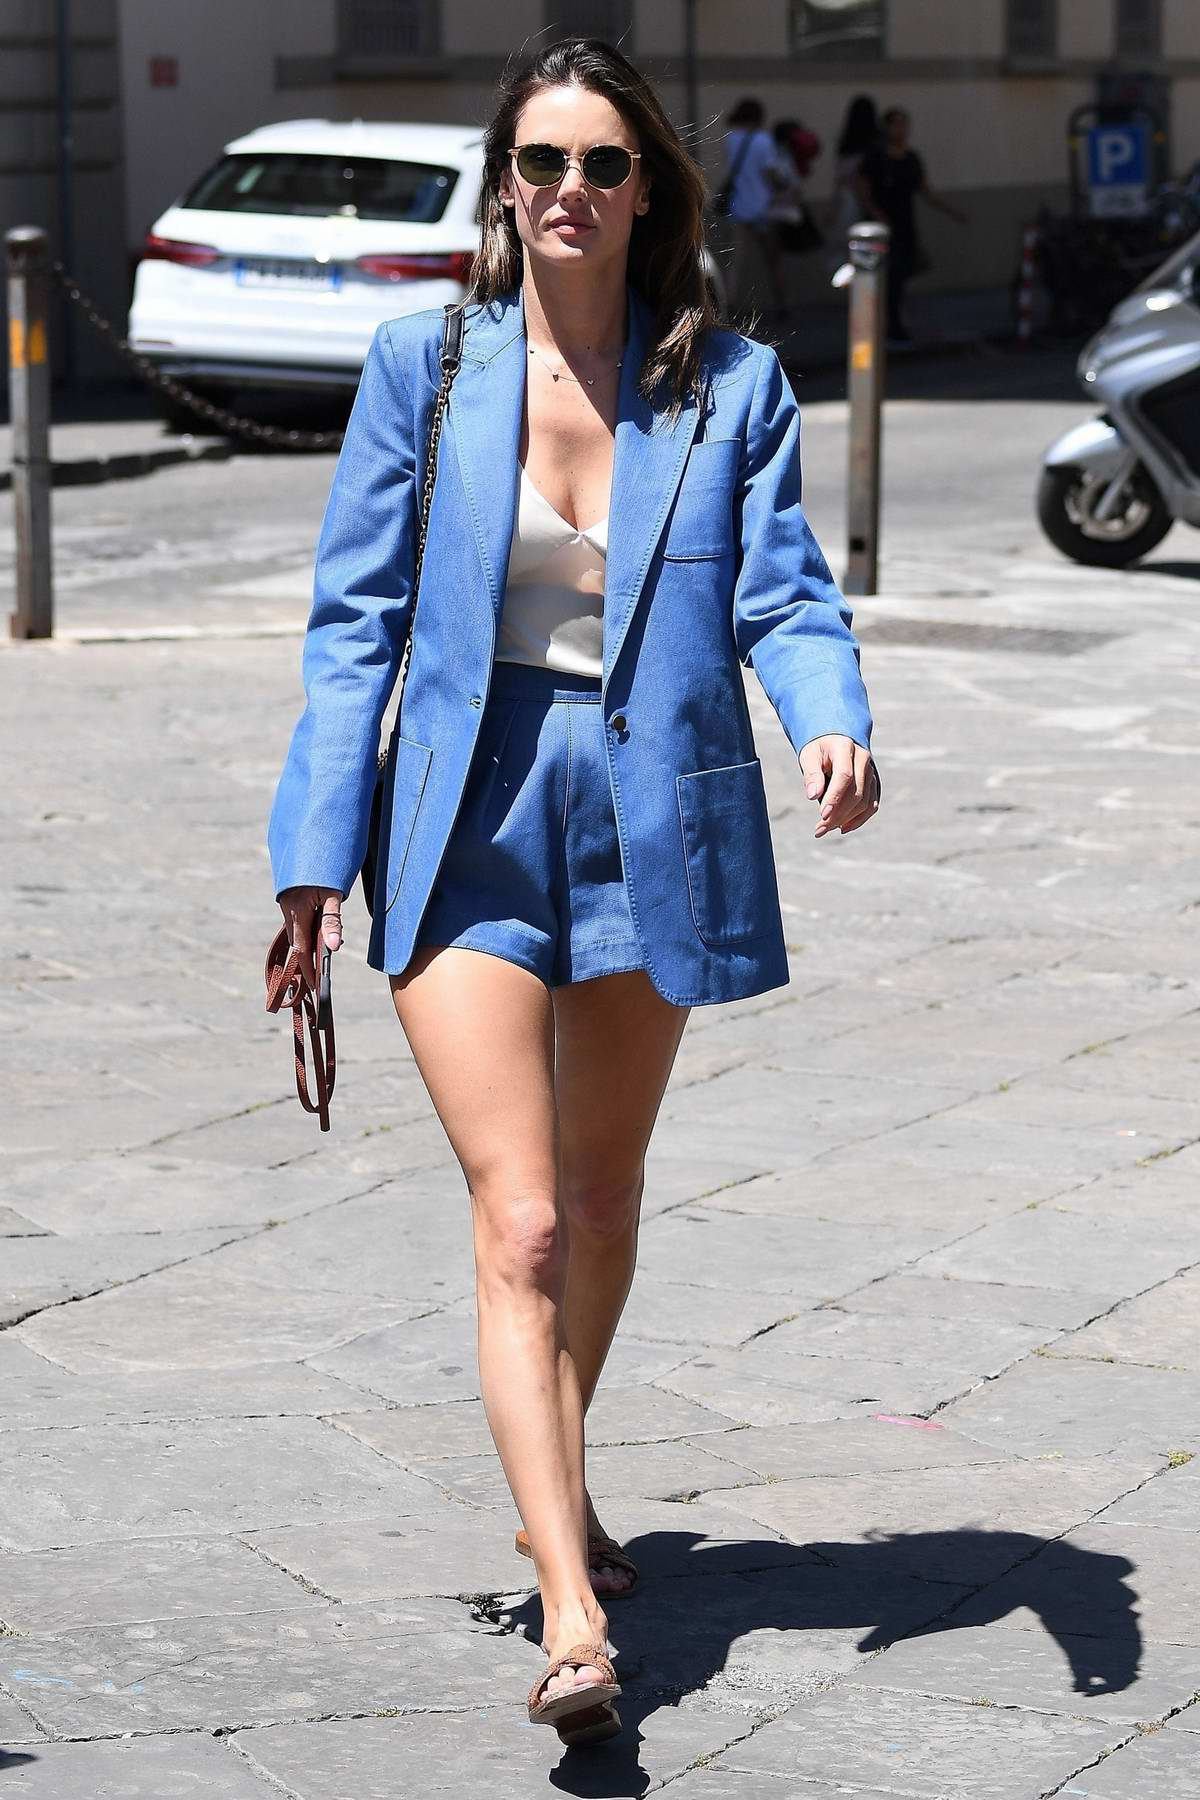 Alessandra Ambrosio stuns in a blue shorts suit as she steps out in Florence, Italy